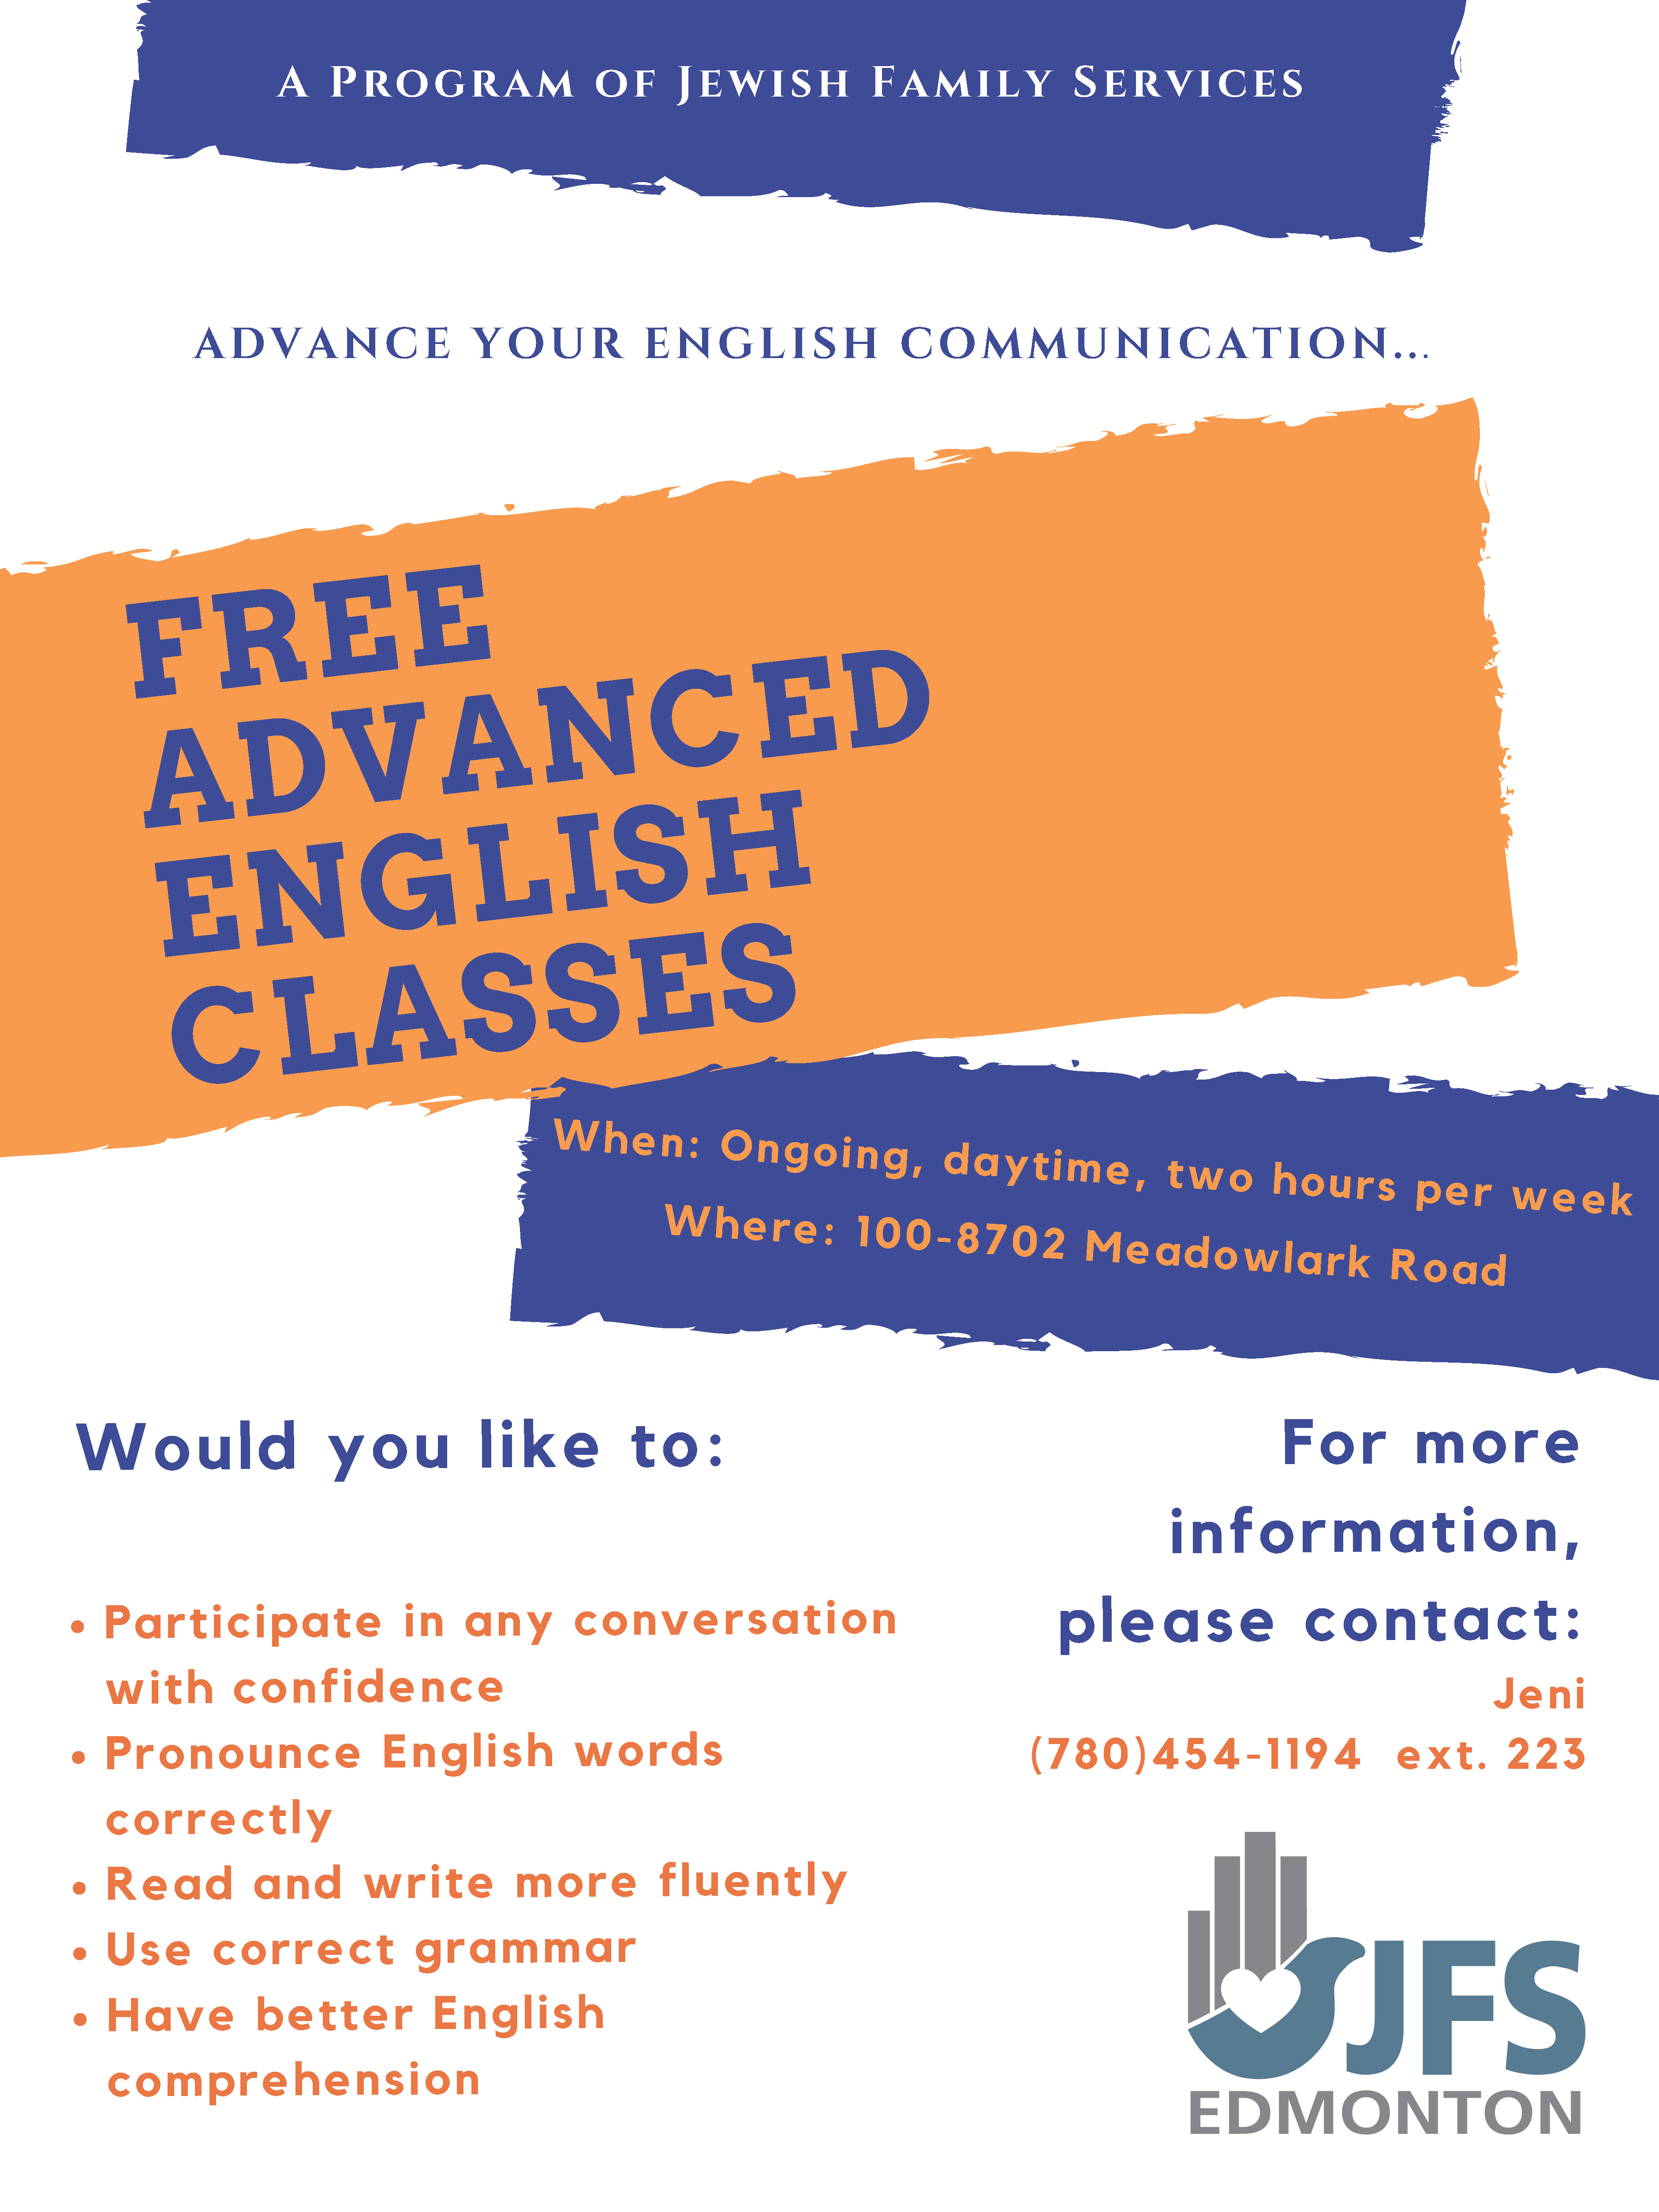 FREE Advanced English course – Jewish Family Services